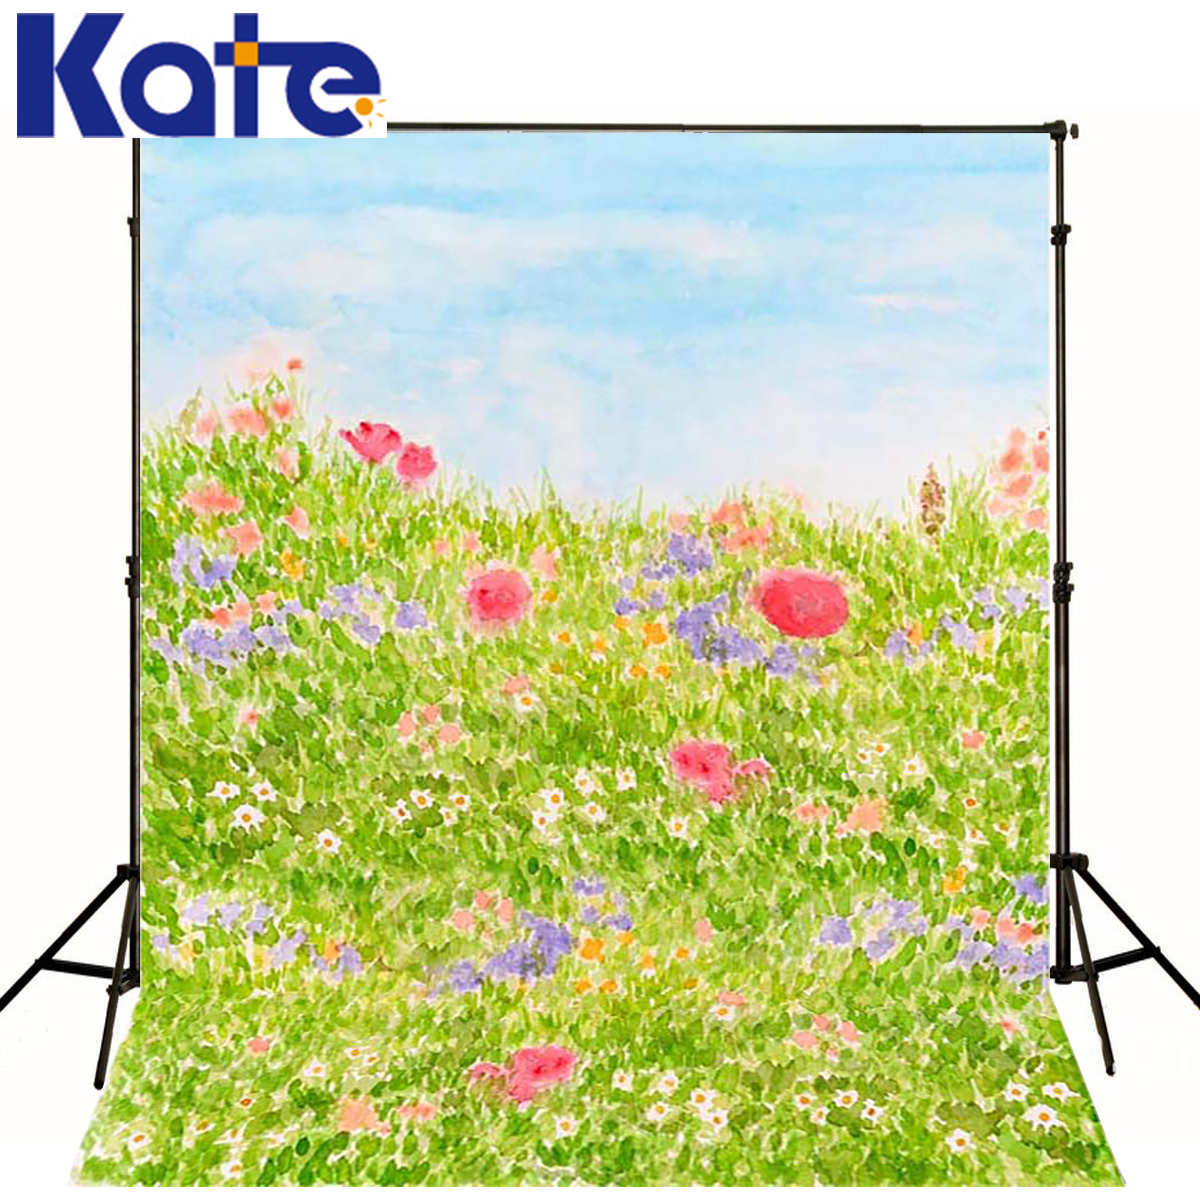 Children Backdrop Spring Meadow Photography Background Children Red Flowers Photography Studio Backgrounds new arrival background fundo meadow flowers gift 300cm 200cm about 10ft 6 5ft width backgrounds lk 3858